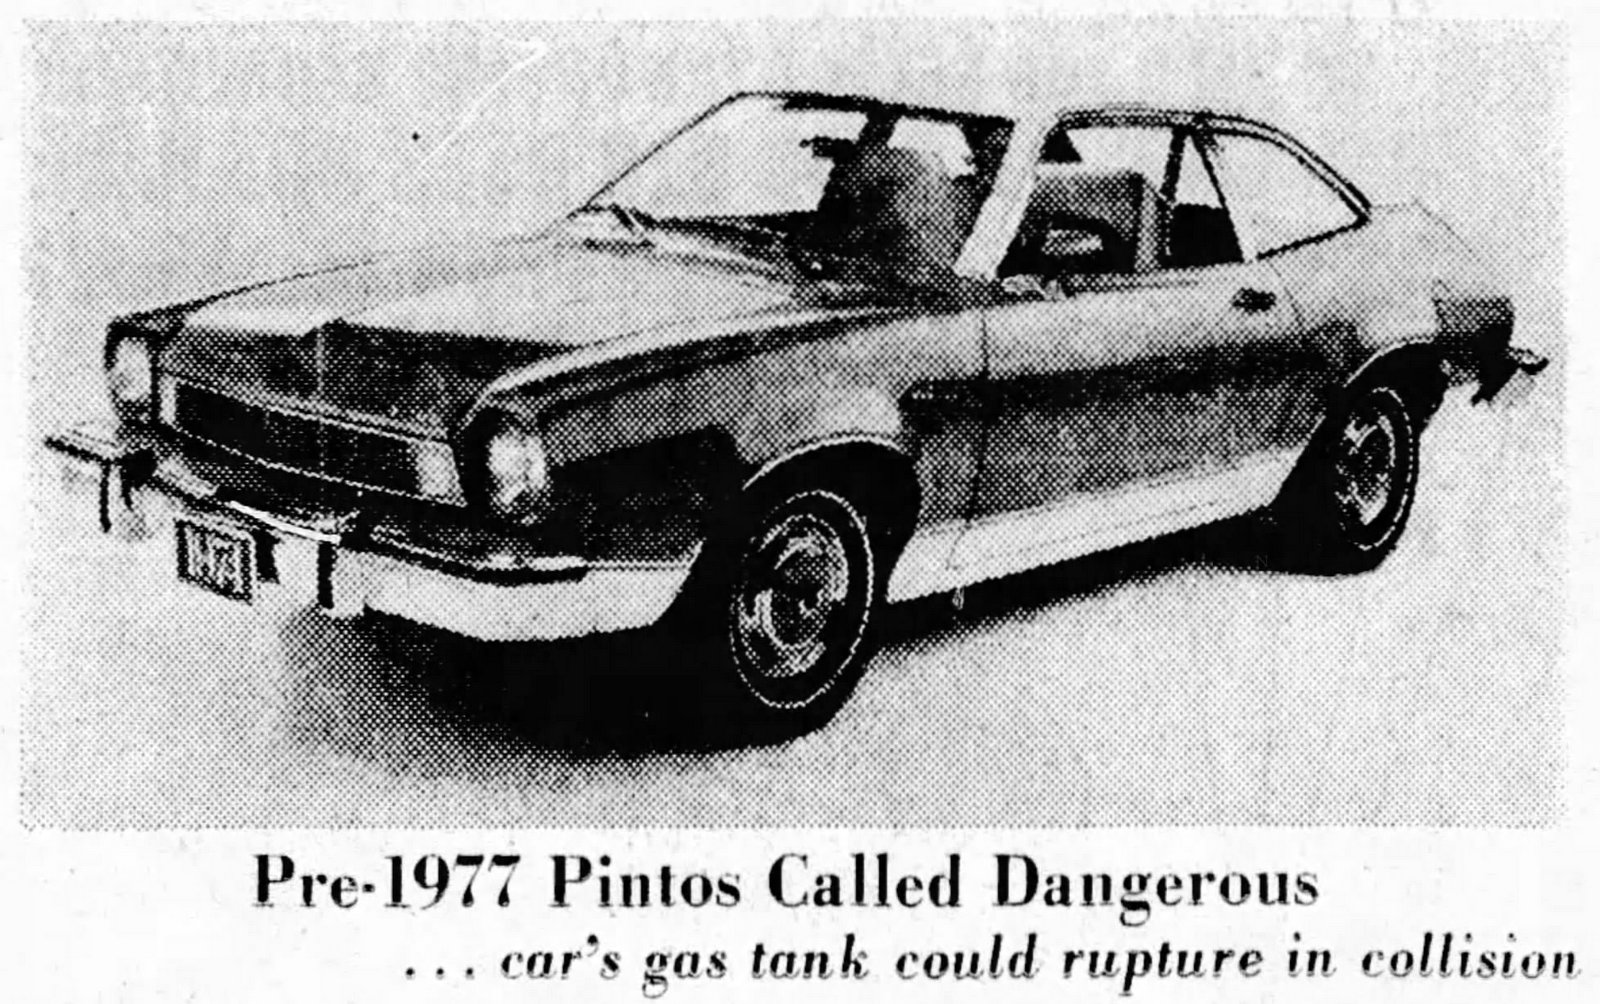 Explosive charges about the Pinto cars 1977